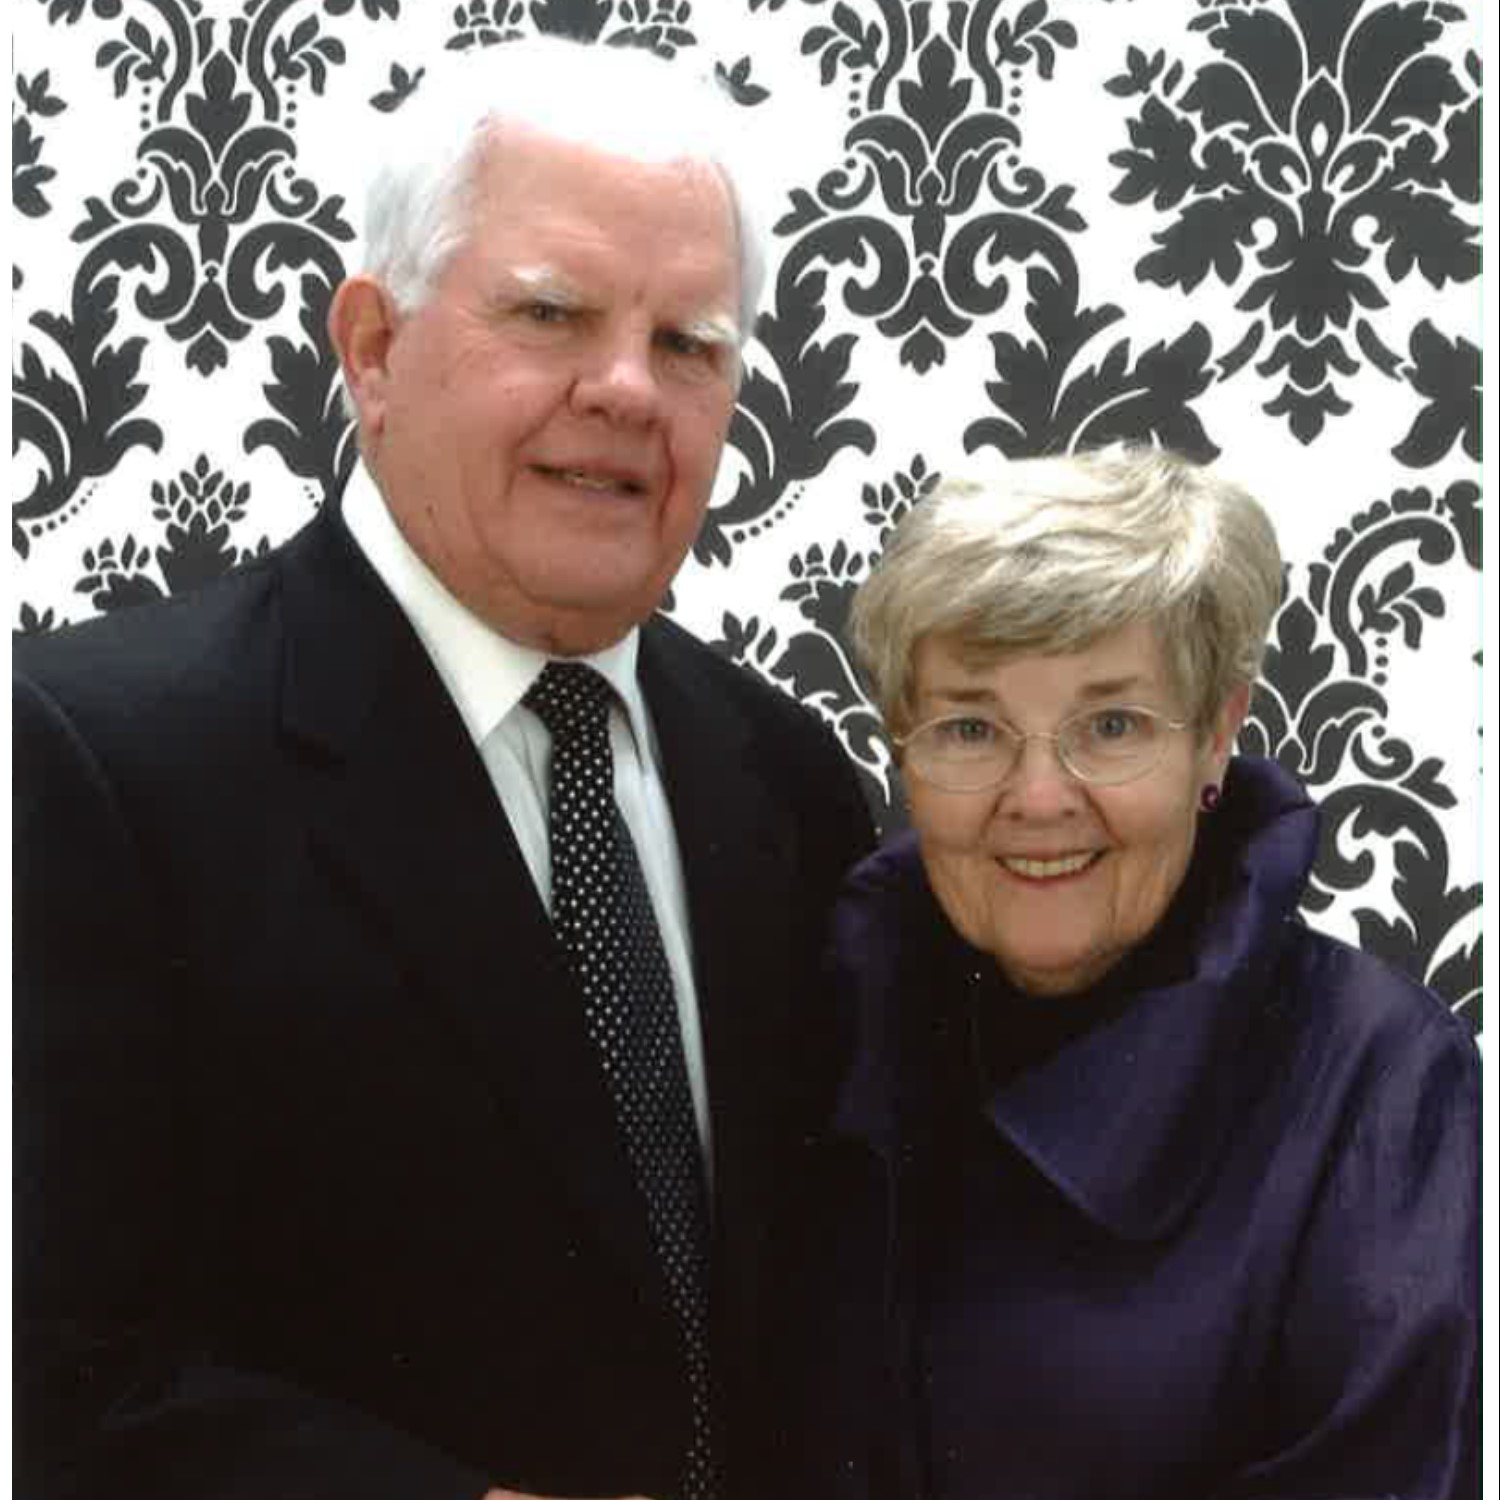 Ron and Marietta Tiller